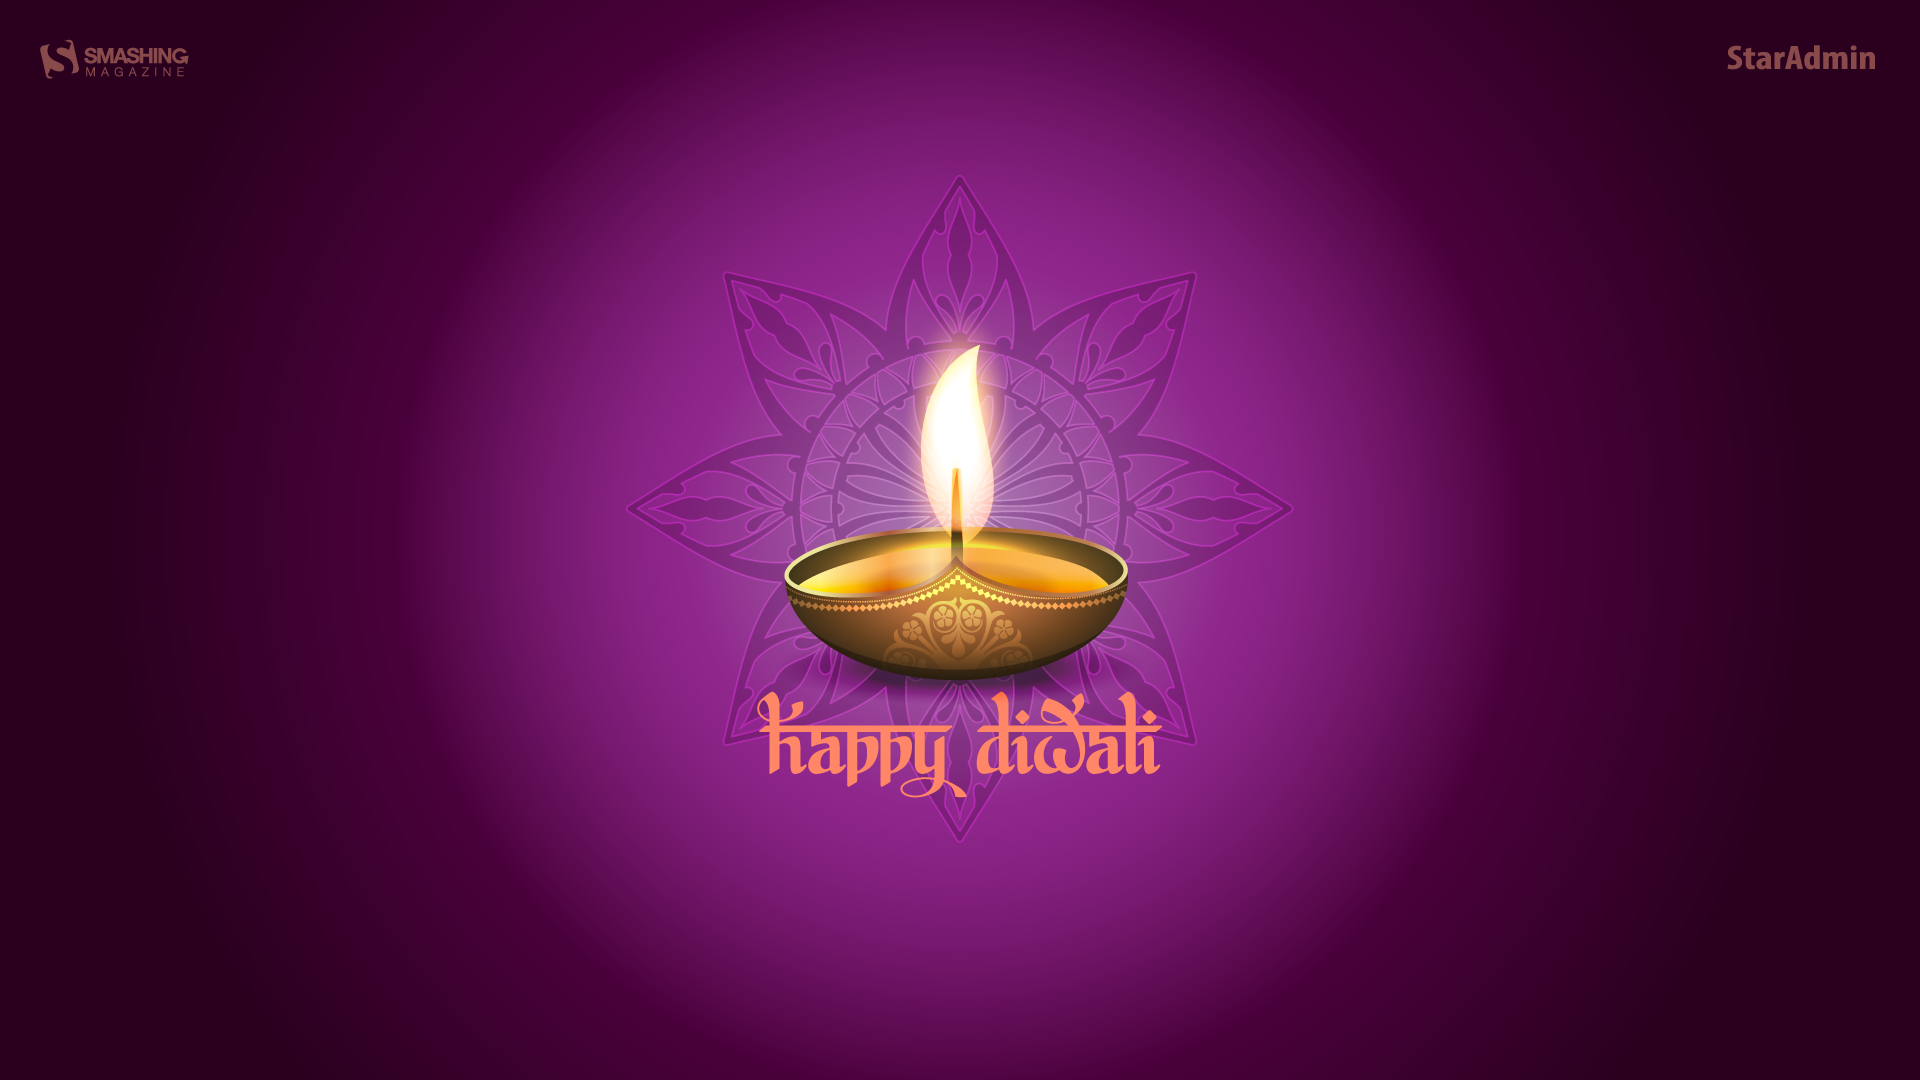 Happy Diwali Wallpaper Hd Deepavali Desktop Background